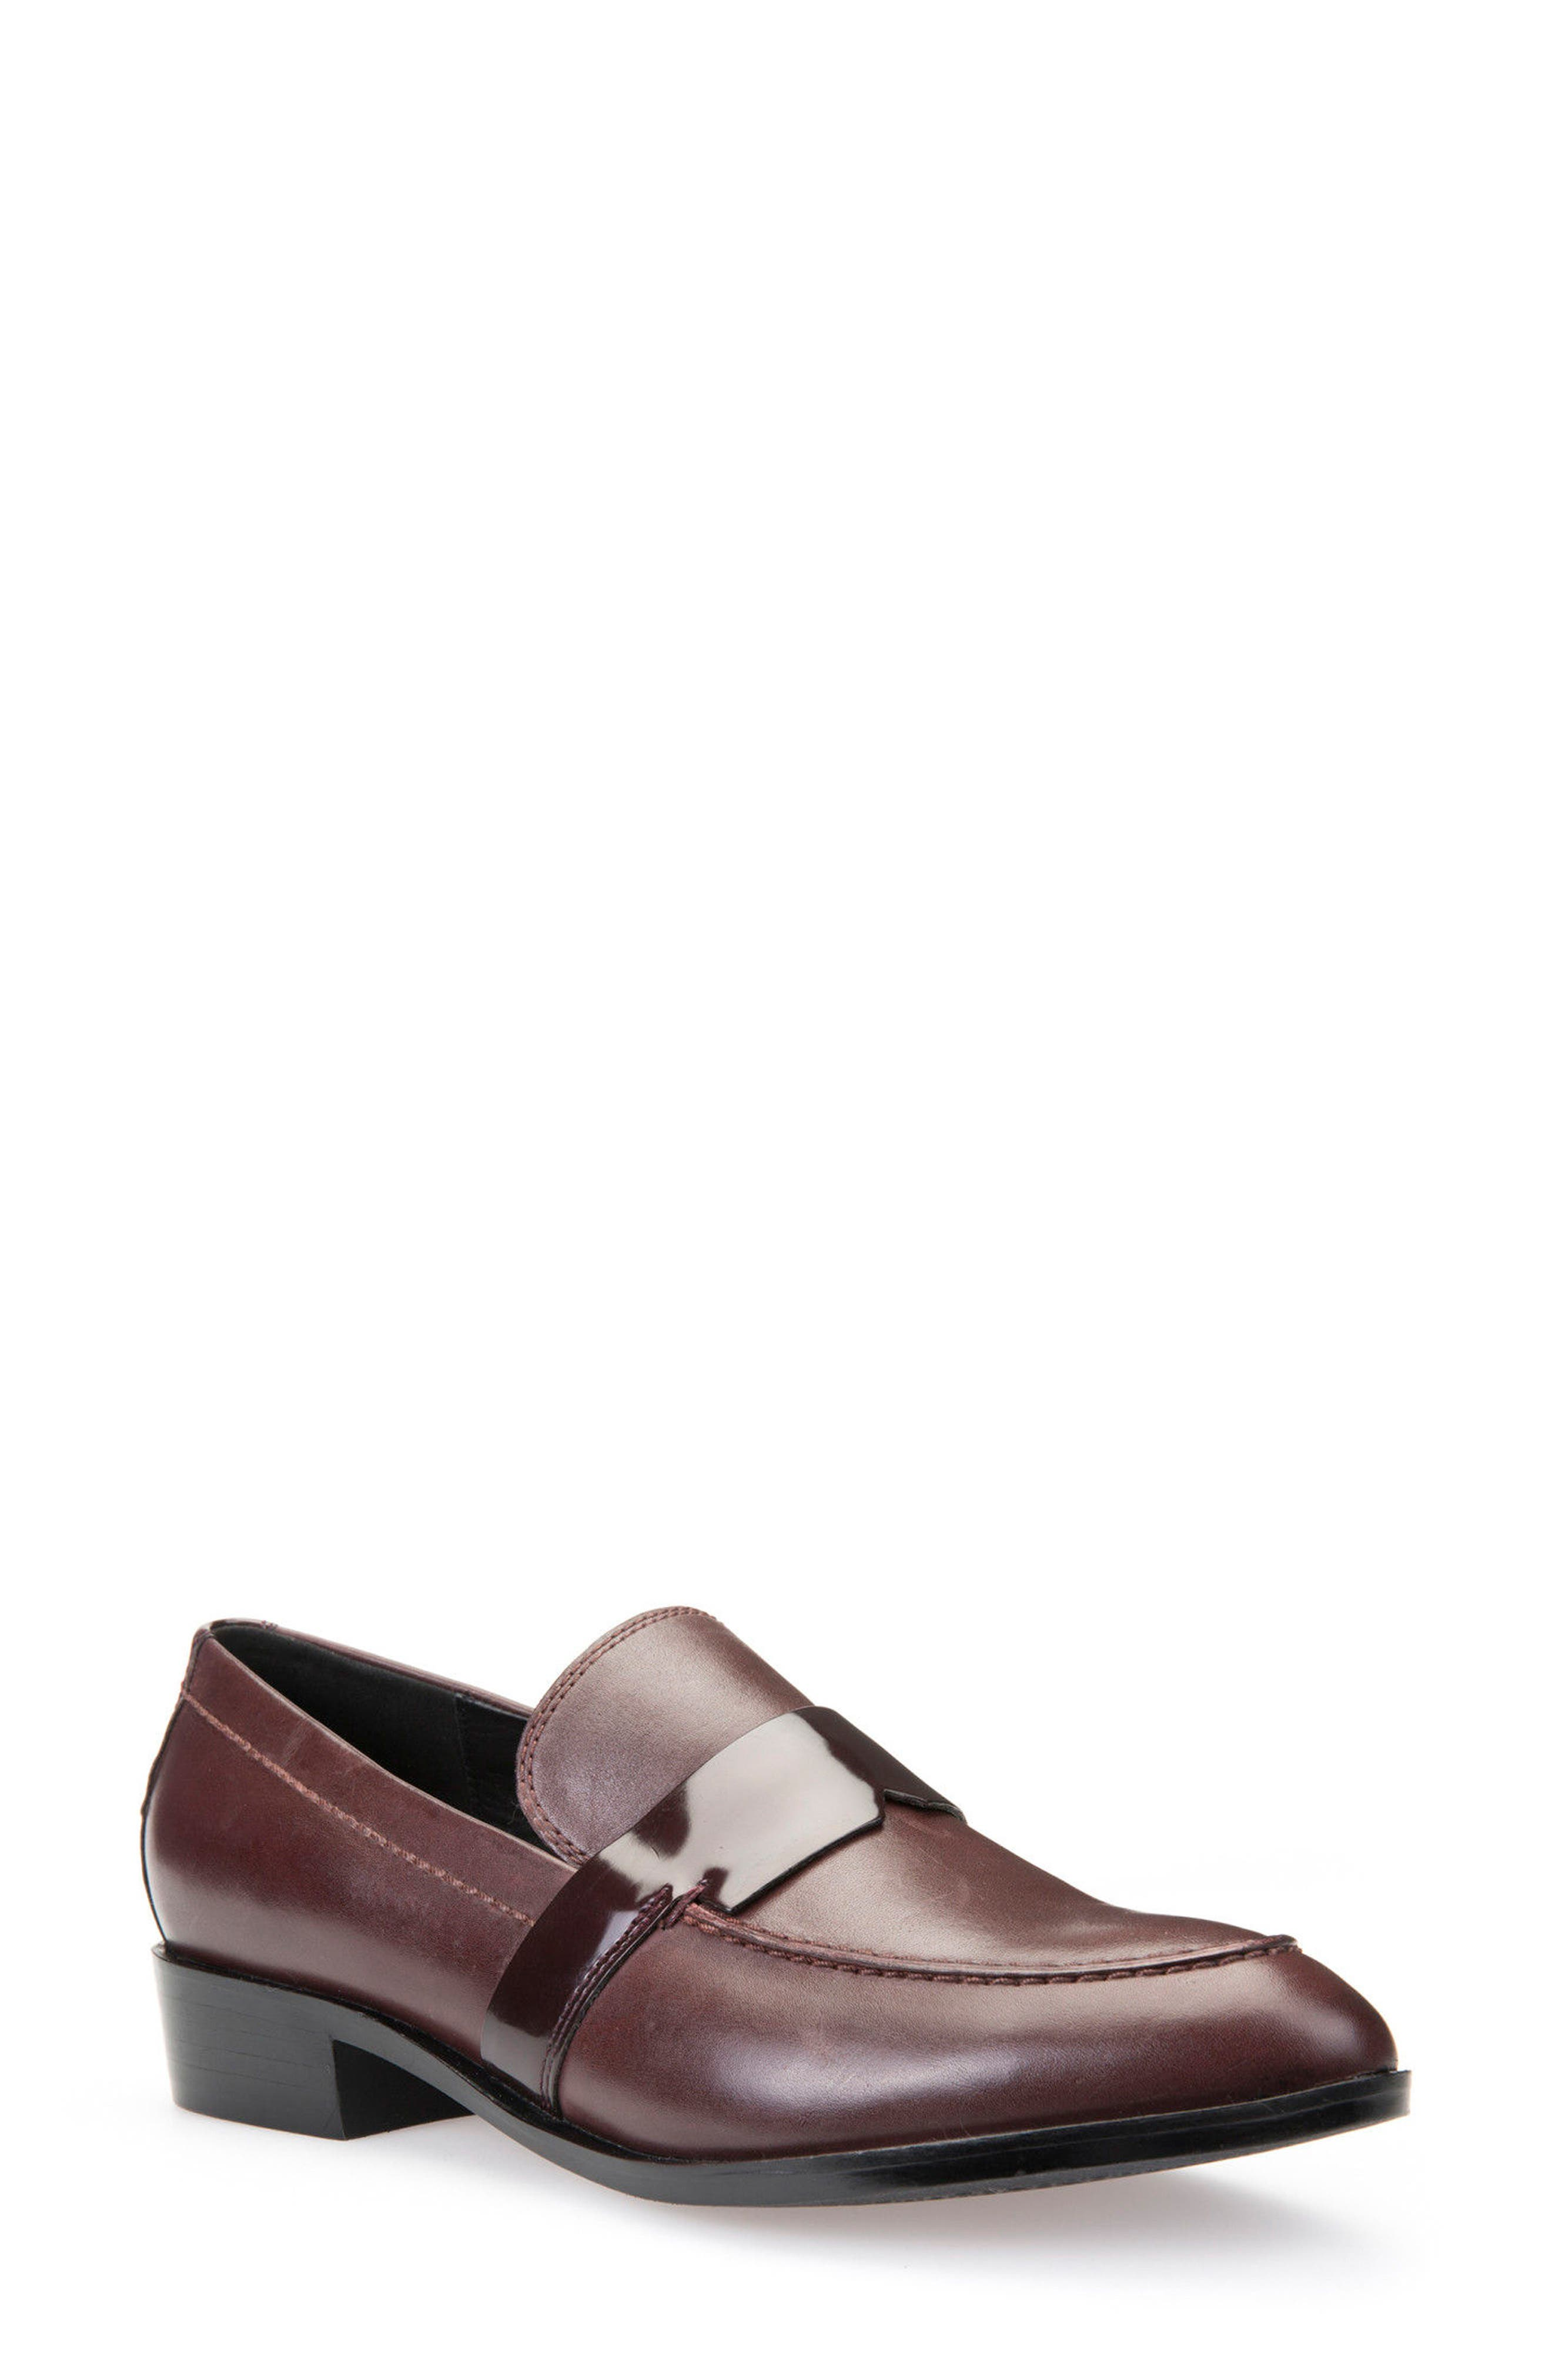 Lover Loafer,                             Main thumbnail 1, color,                             Dark Burgundy Leather